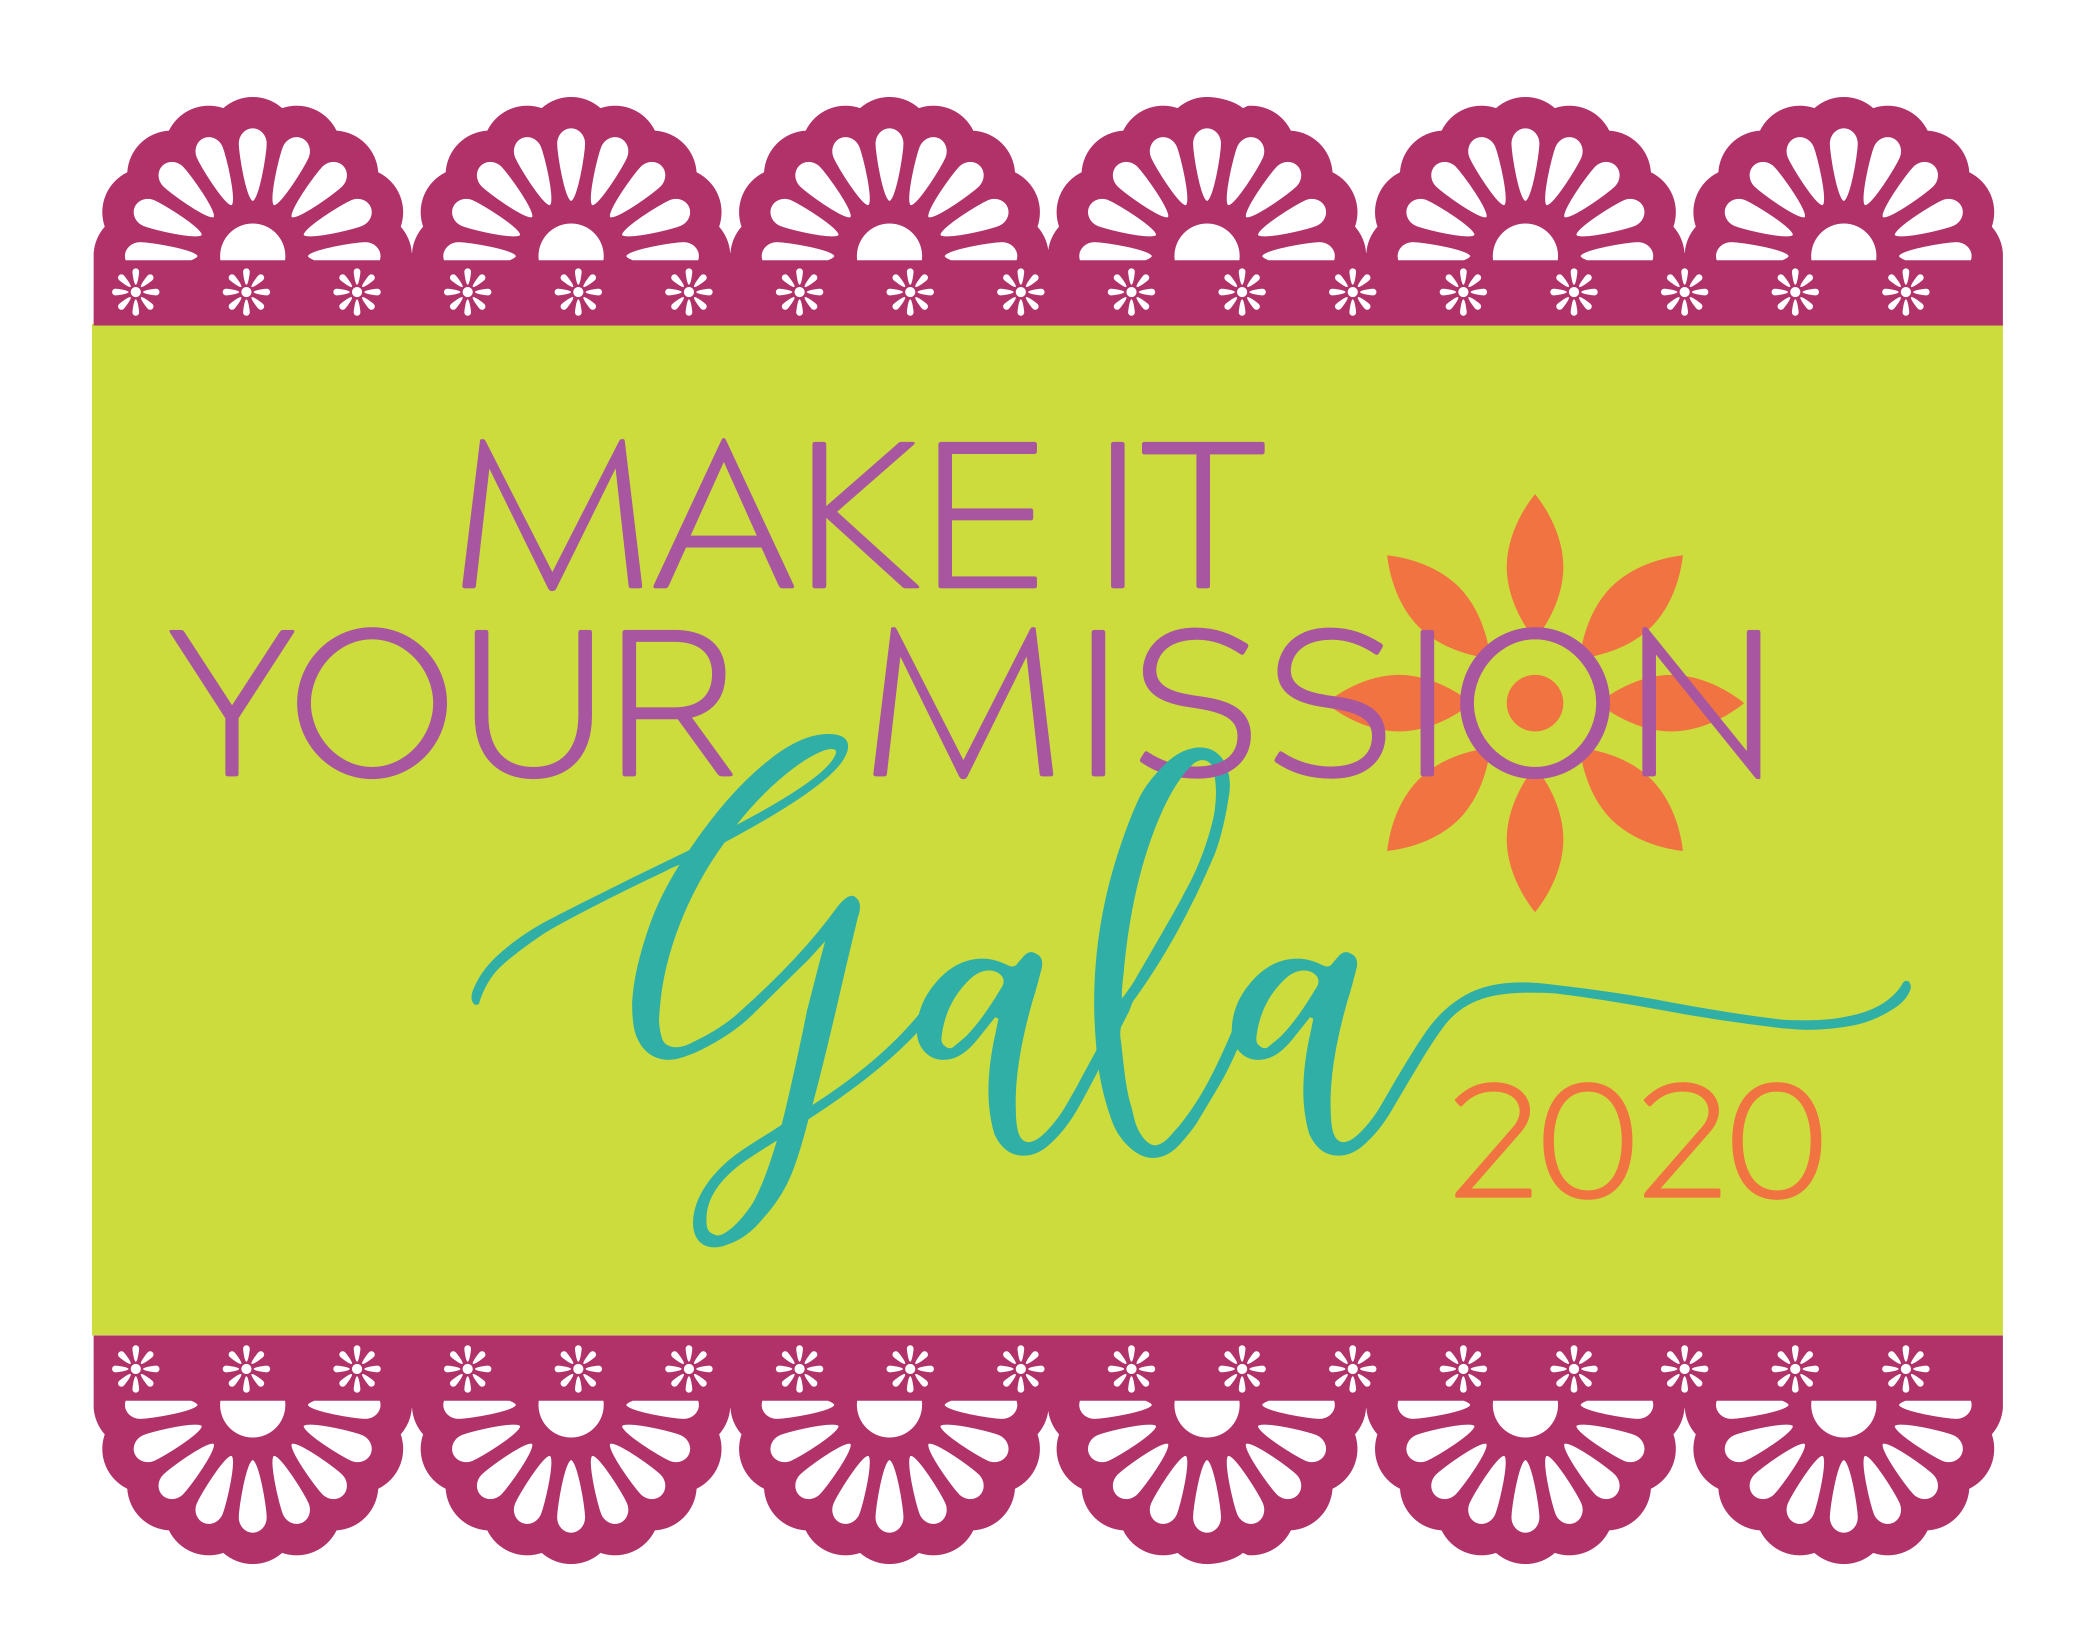 Make_It_Your_Mission_Gala_2020_FINAL_Papel_Picado_Logo